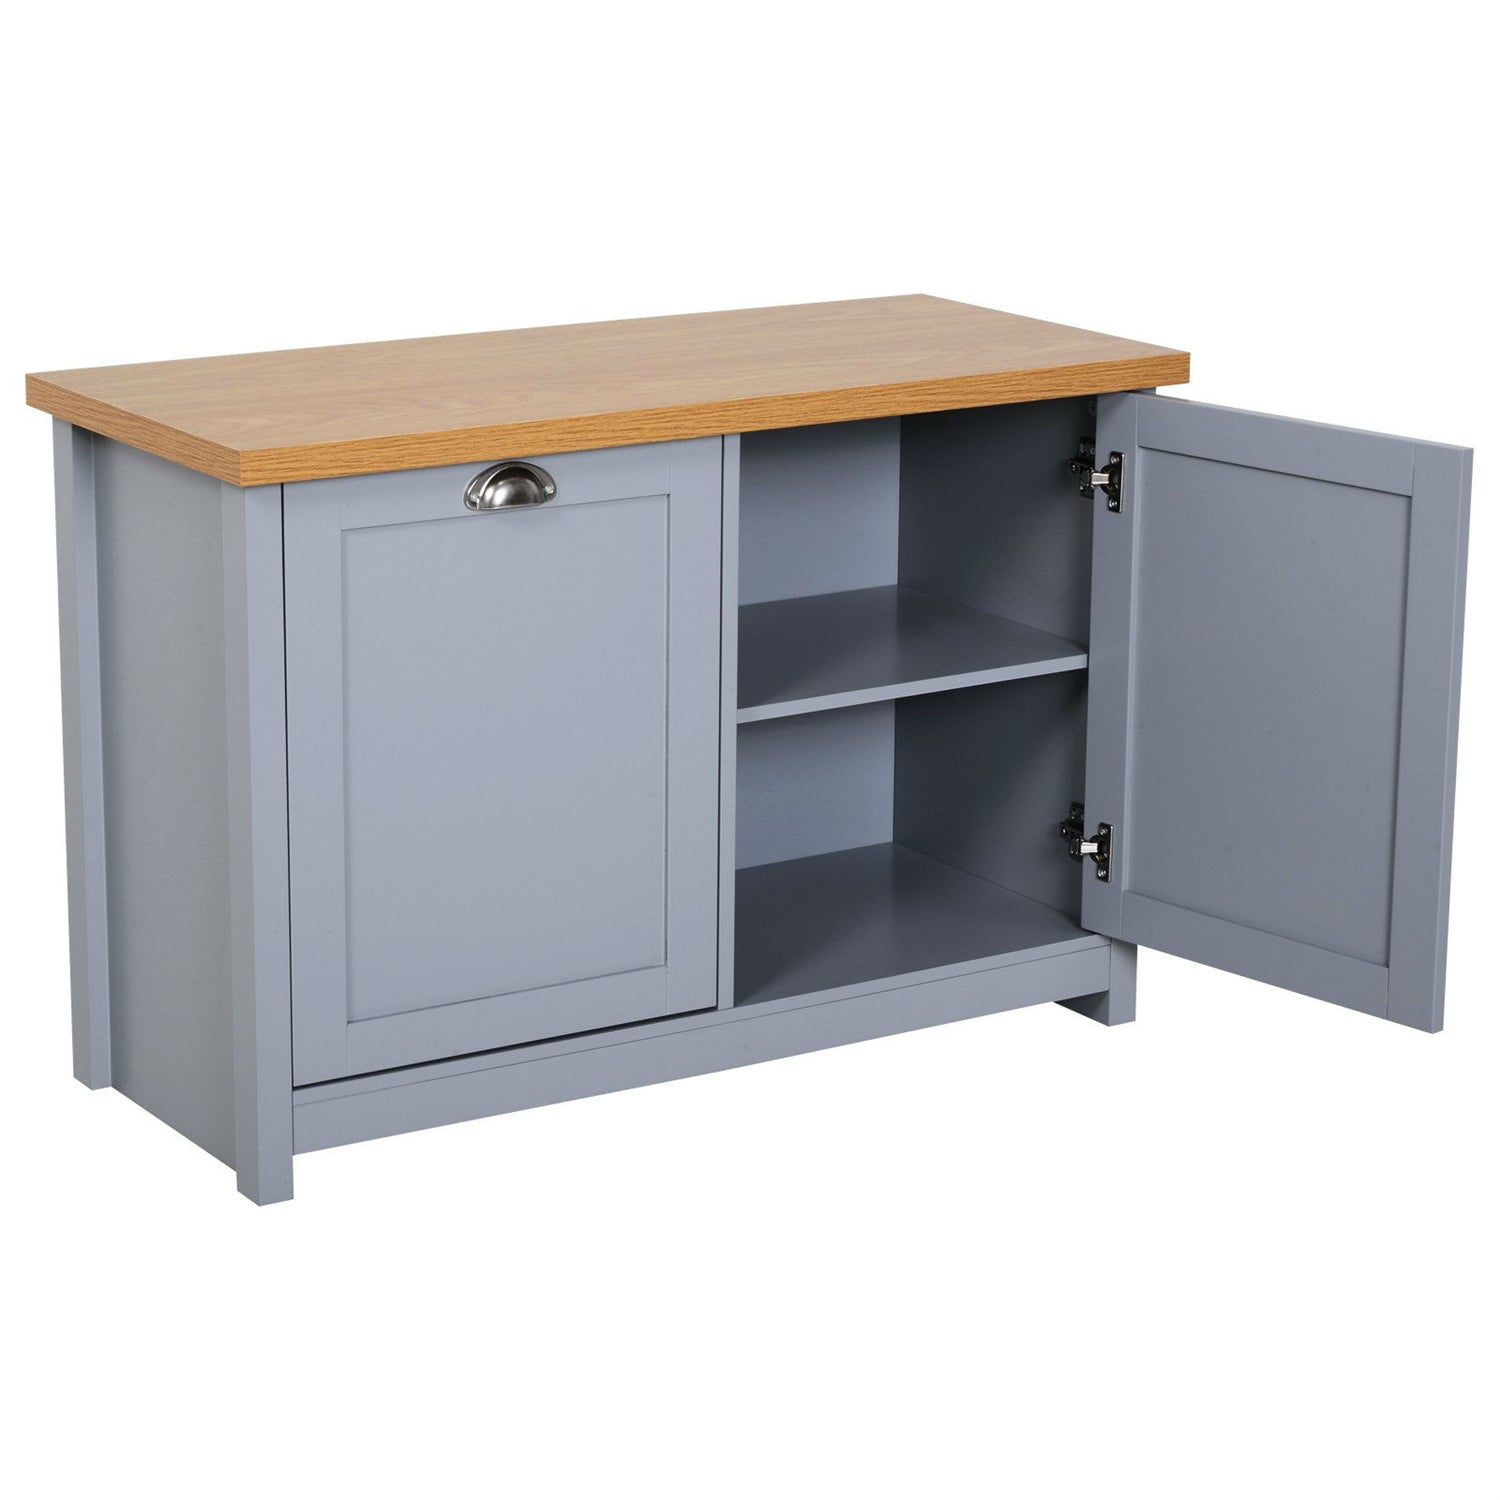 Gray and Oak Finish Wood Top Cabinet Entryway Storage Bench